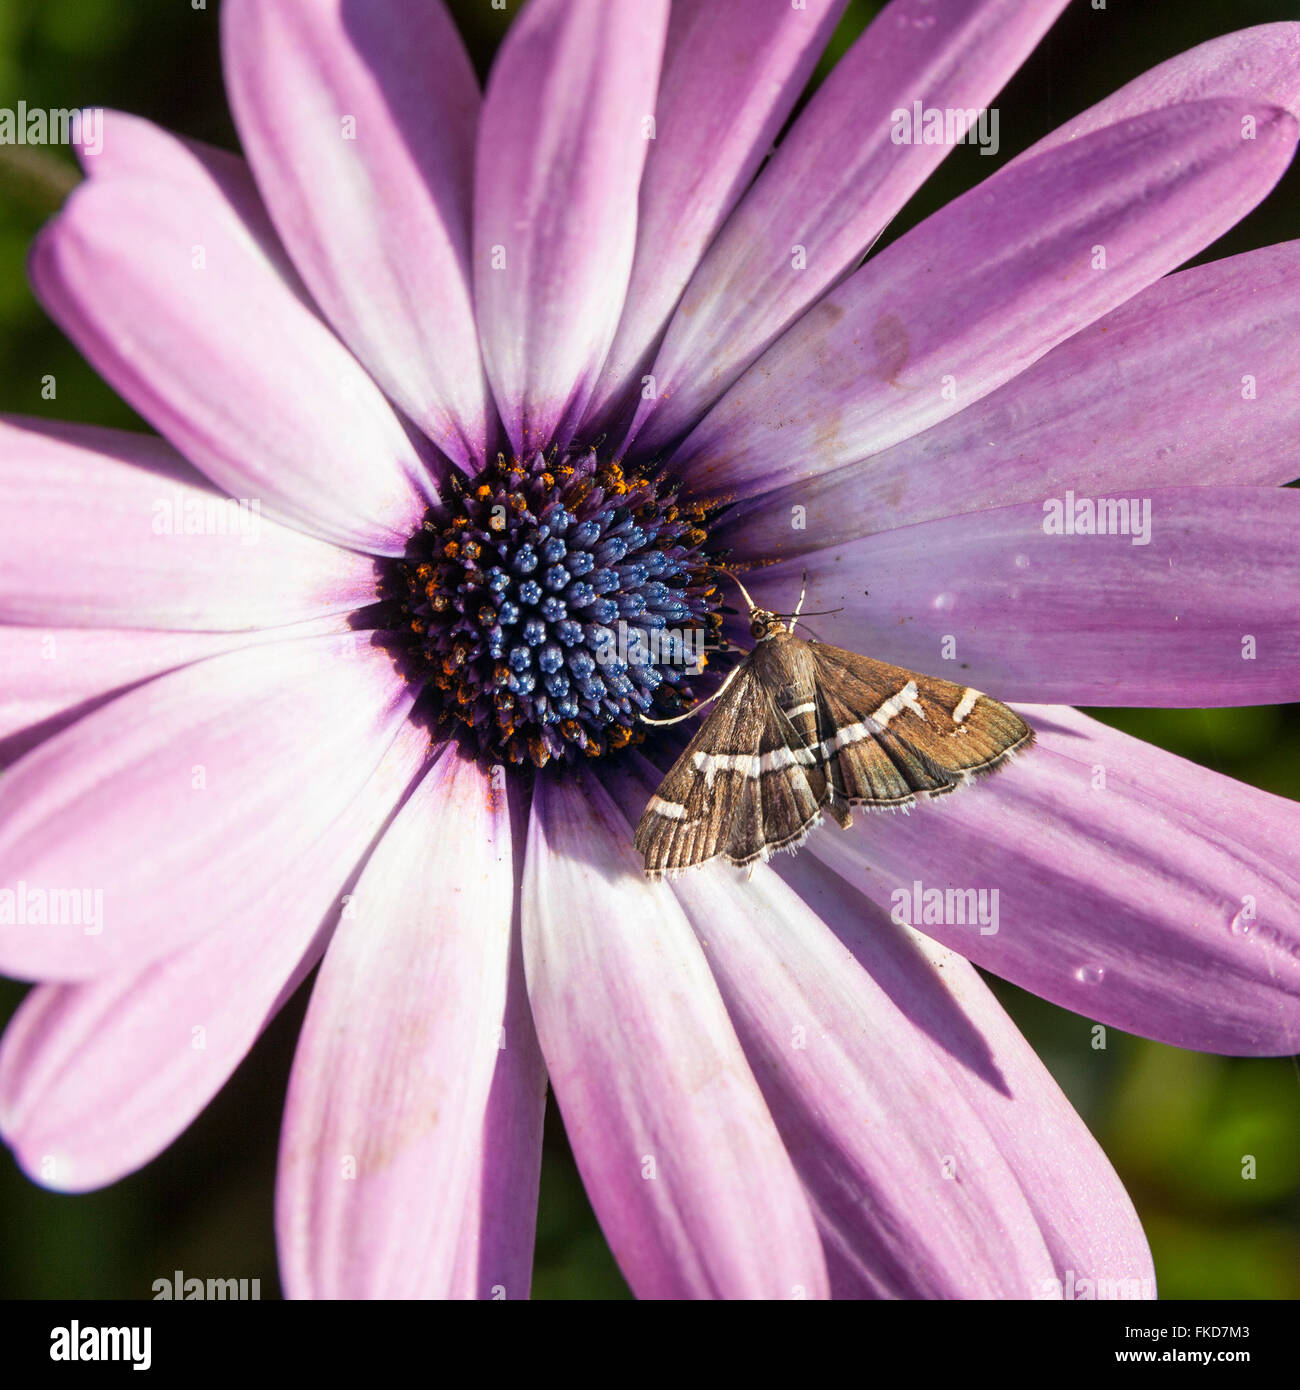 Brown moth with white stripes on purple flower of daisy in sunlight brown moth with white stripes on purple flower of daisy in sunlight izmirmasajfo Choice Image